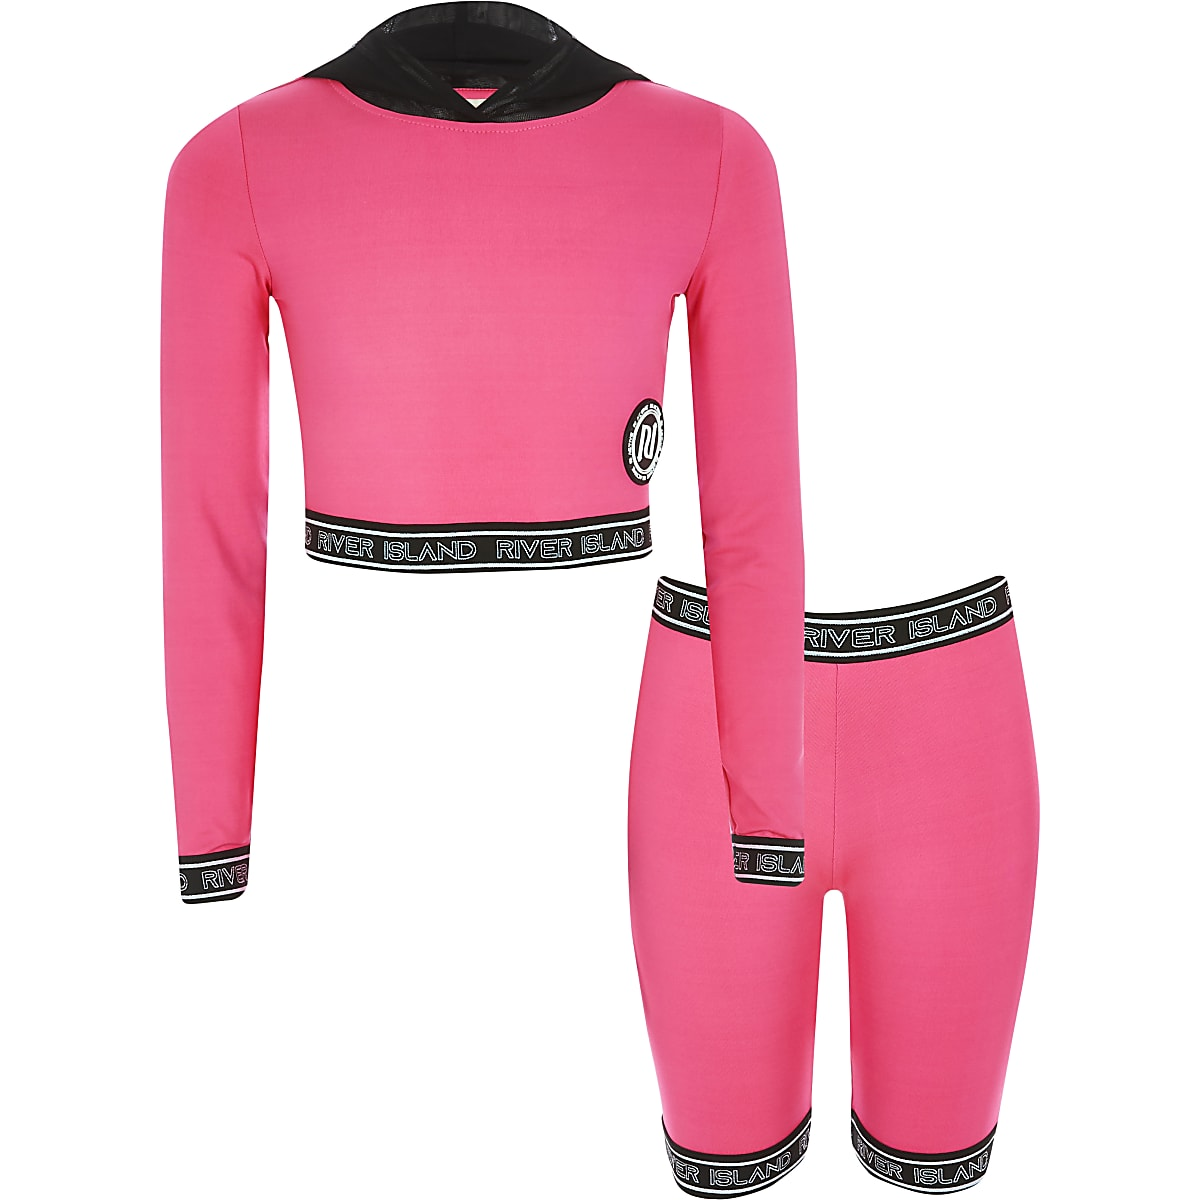 Girls RI Active pink RI hoodie outfit